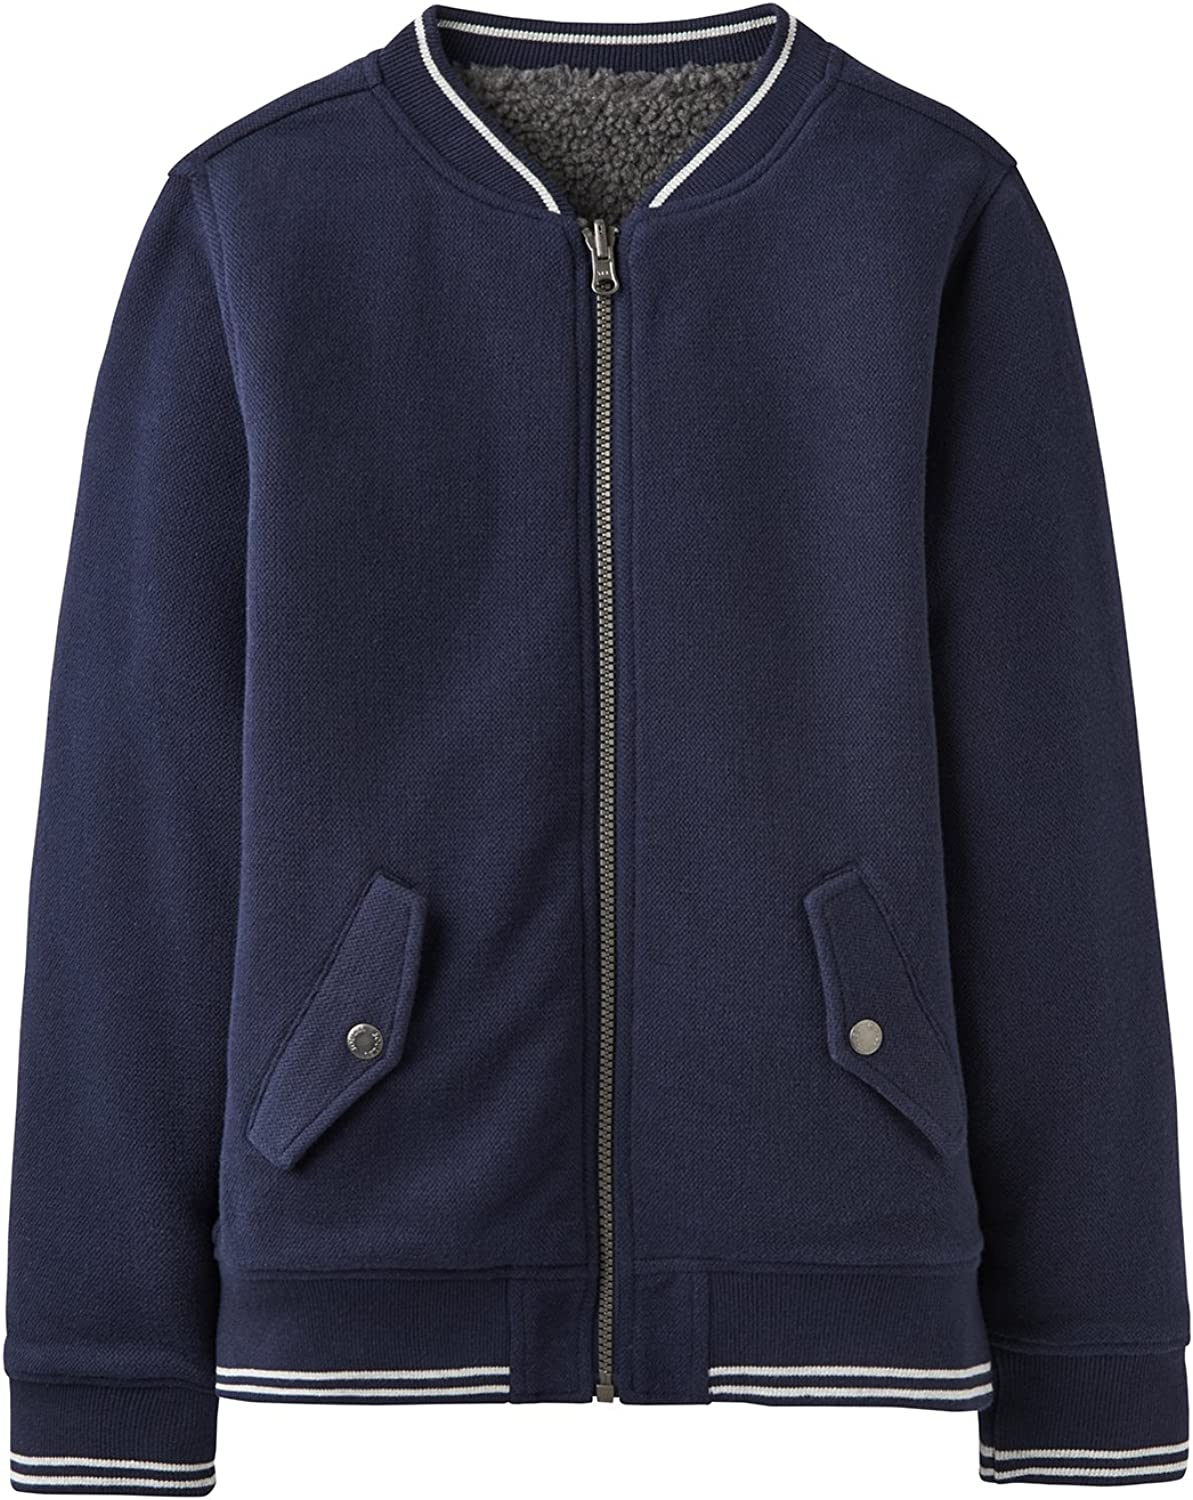 French Navy Joules Reversible Bomber Jacket